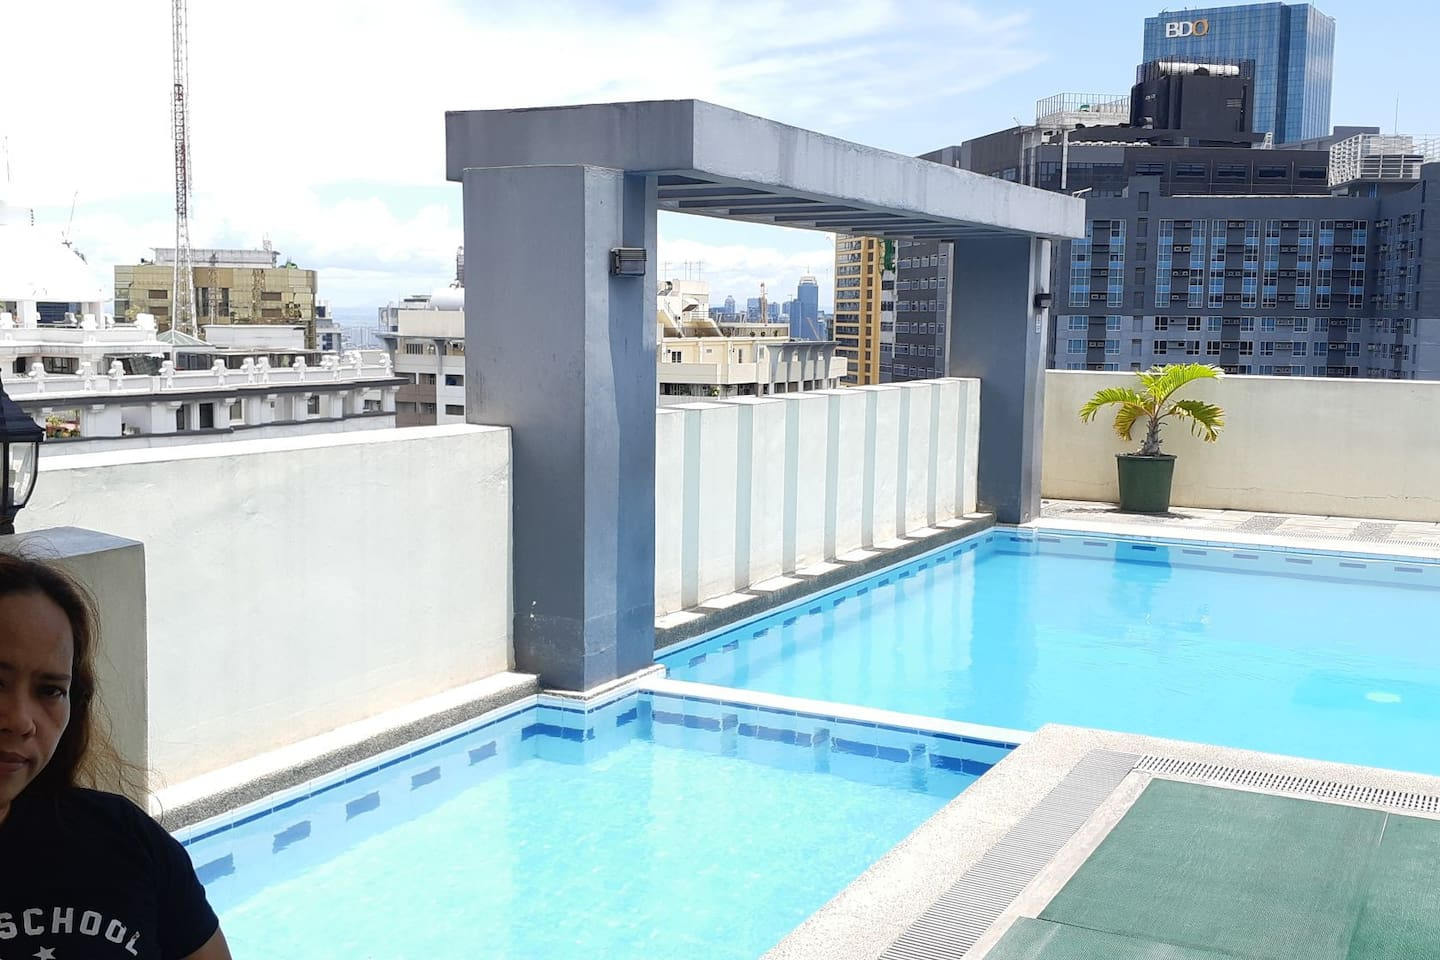 at the penthouse of the building were the pool and gym are located